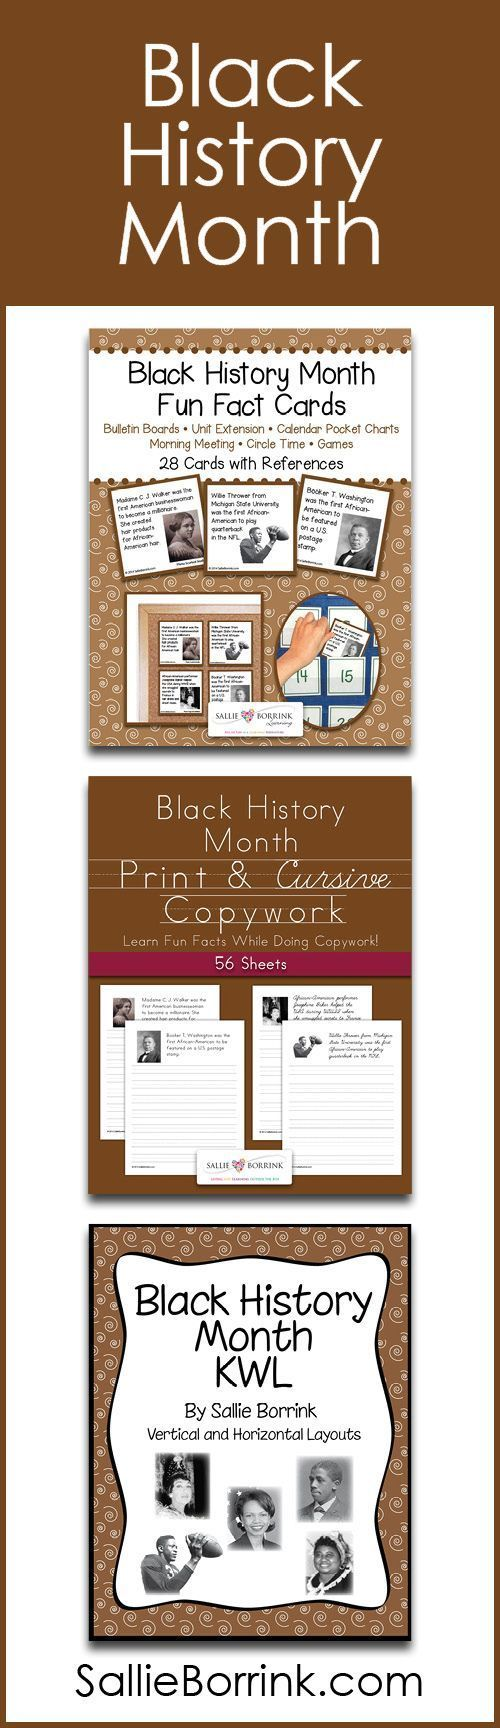 Learn about fascinating people during Black History Month with these fun and practical products! They include Fun Fact Cards, Print and Cursive Copywork and Handwriting, and a Black History Month KWL .Perfect unit extensions for your Black History Month unit!